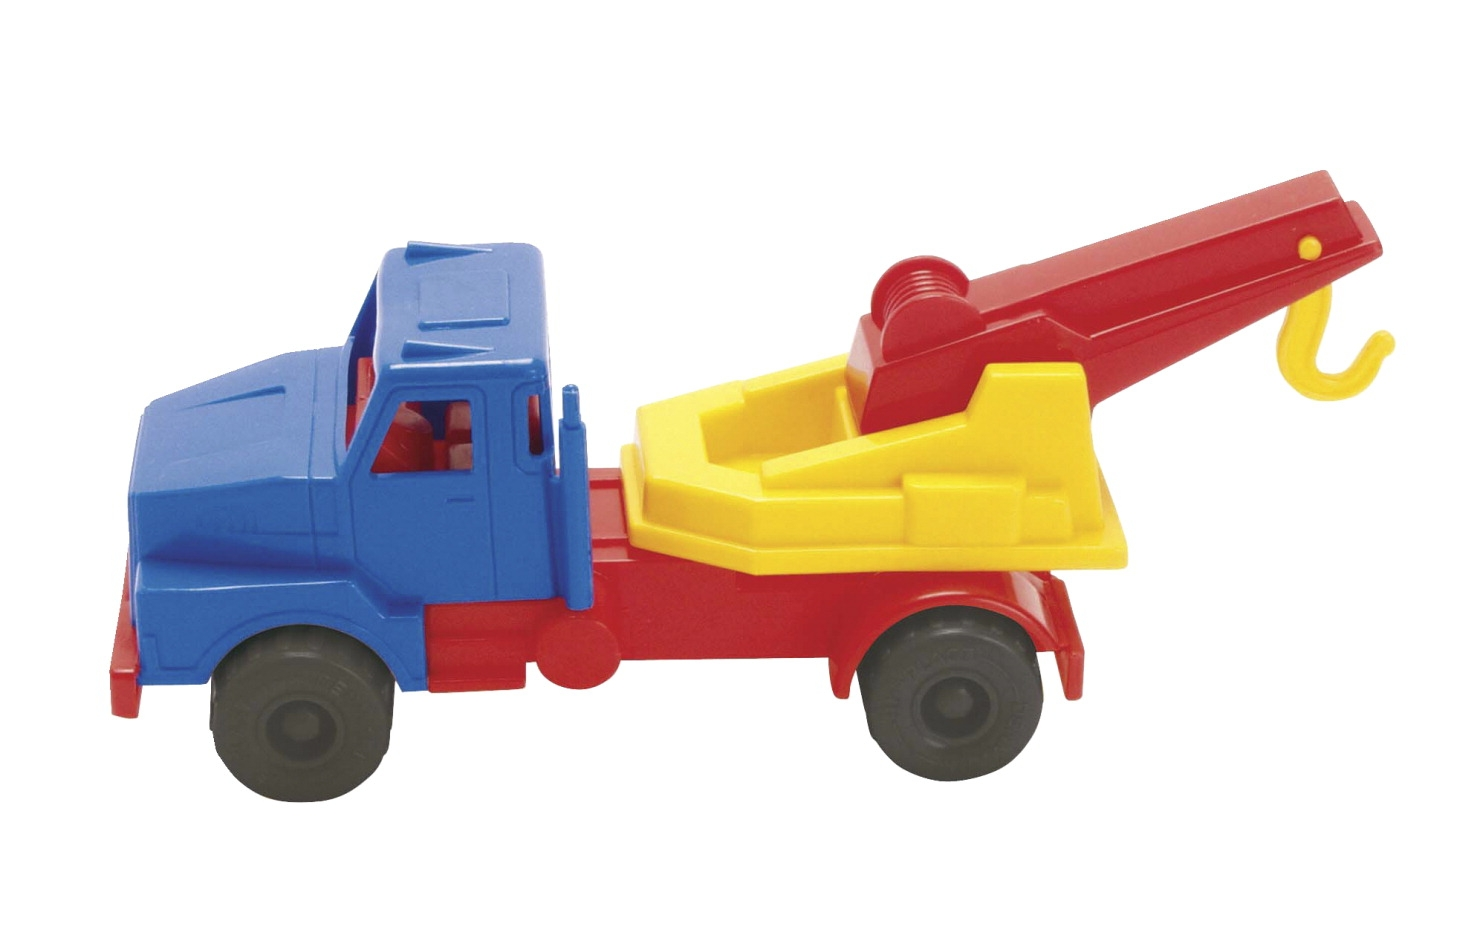 Toys Manipulatives - 269003 - Dantoy Tow Truck Toy; 9-1/2 Inches 269003